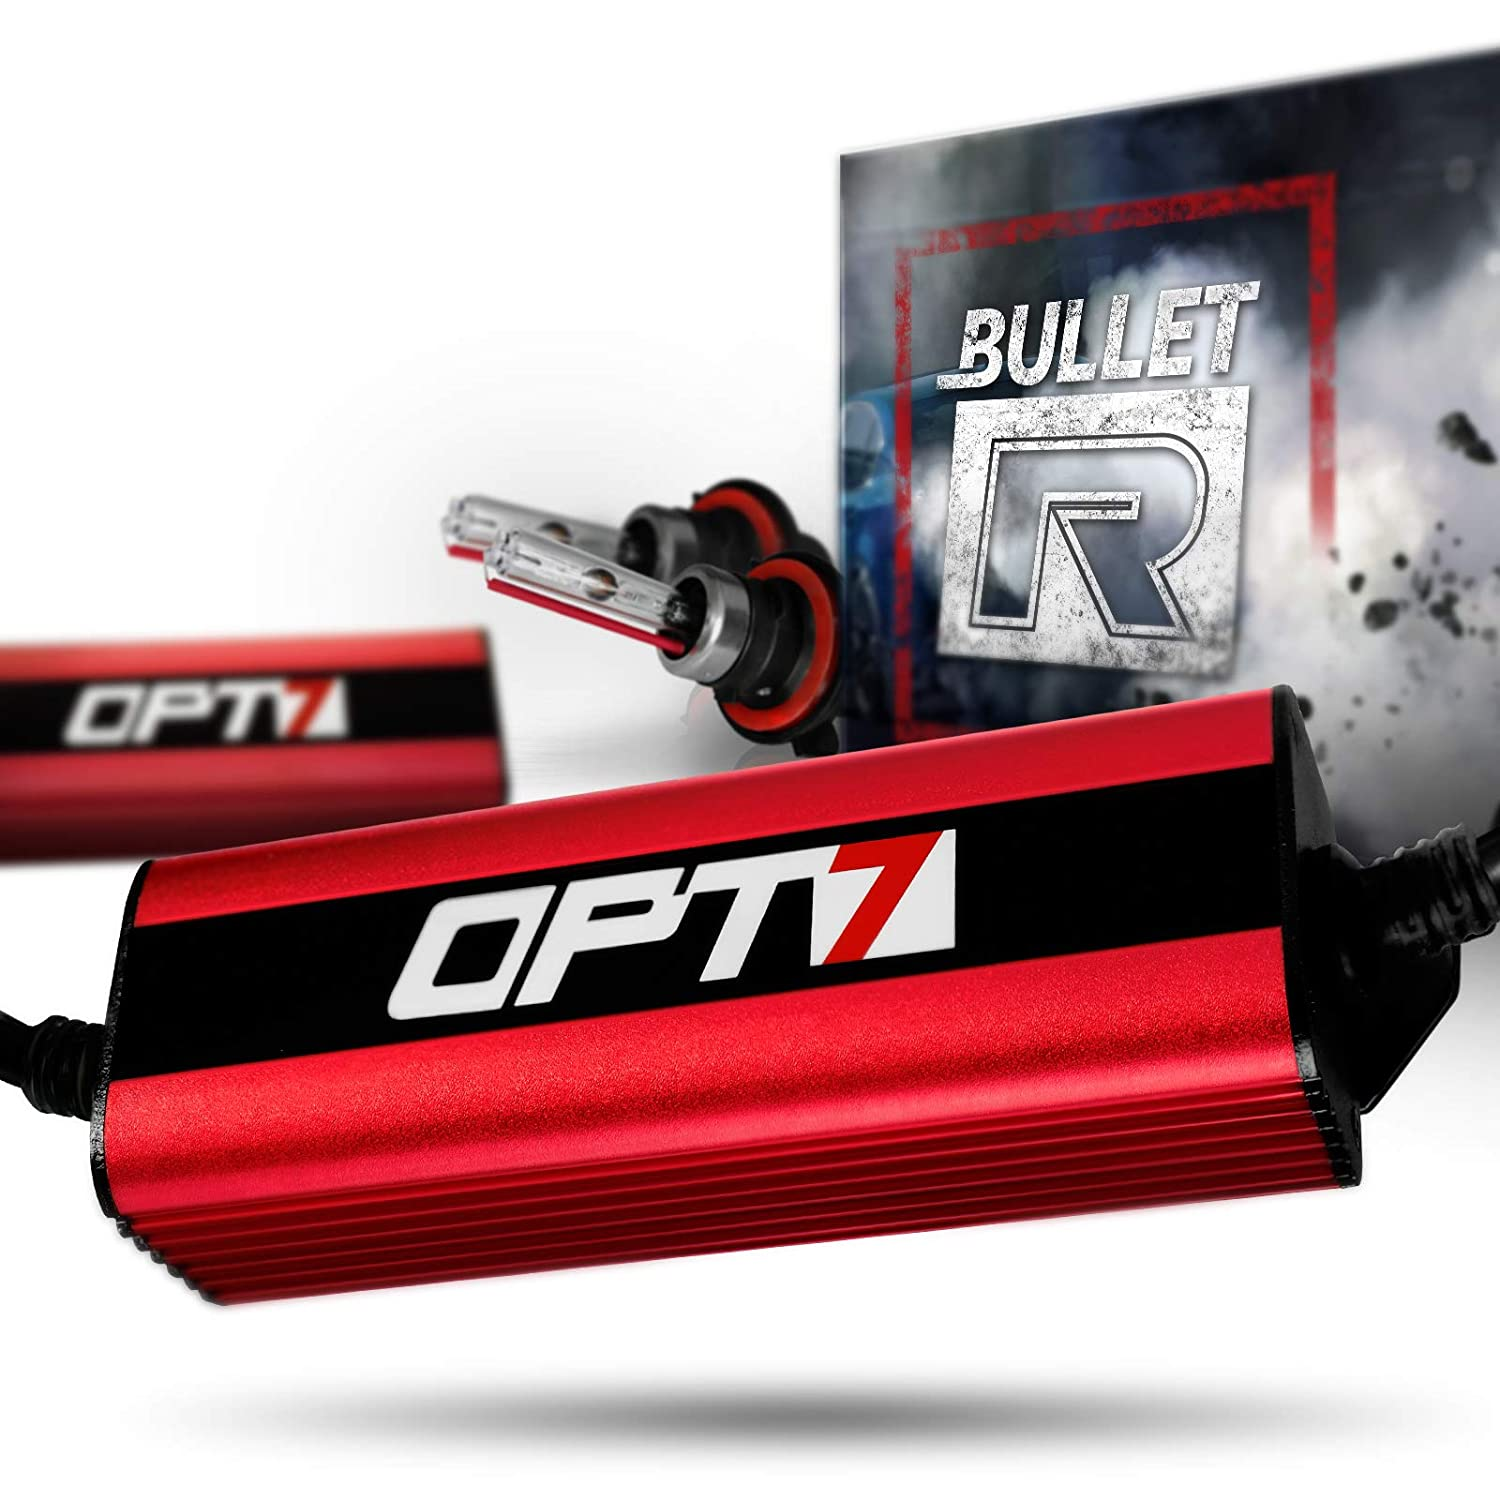 OPT7 Bullet-R 9007 Bi-Xenon HID Kit - 3X Brighter - 4X Longer Life - All Bulb Sizes and Colors - 2 Yr Warranty [5000K Bright White Light]